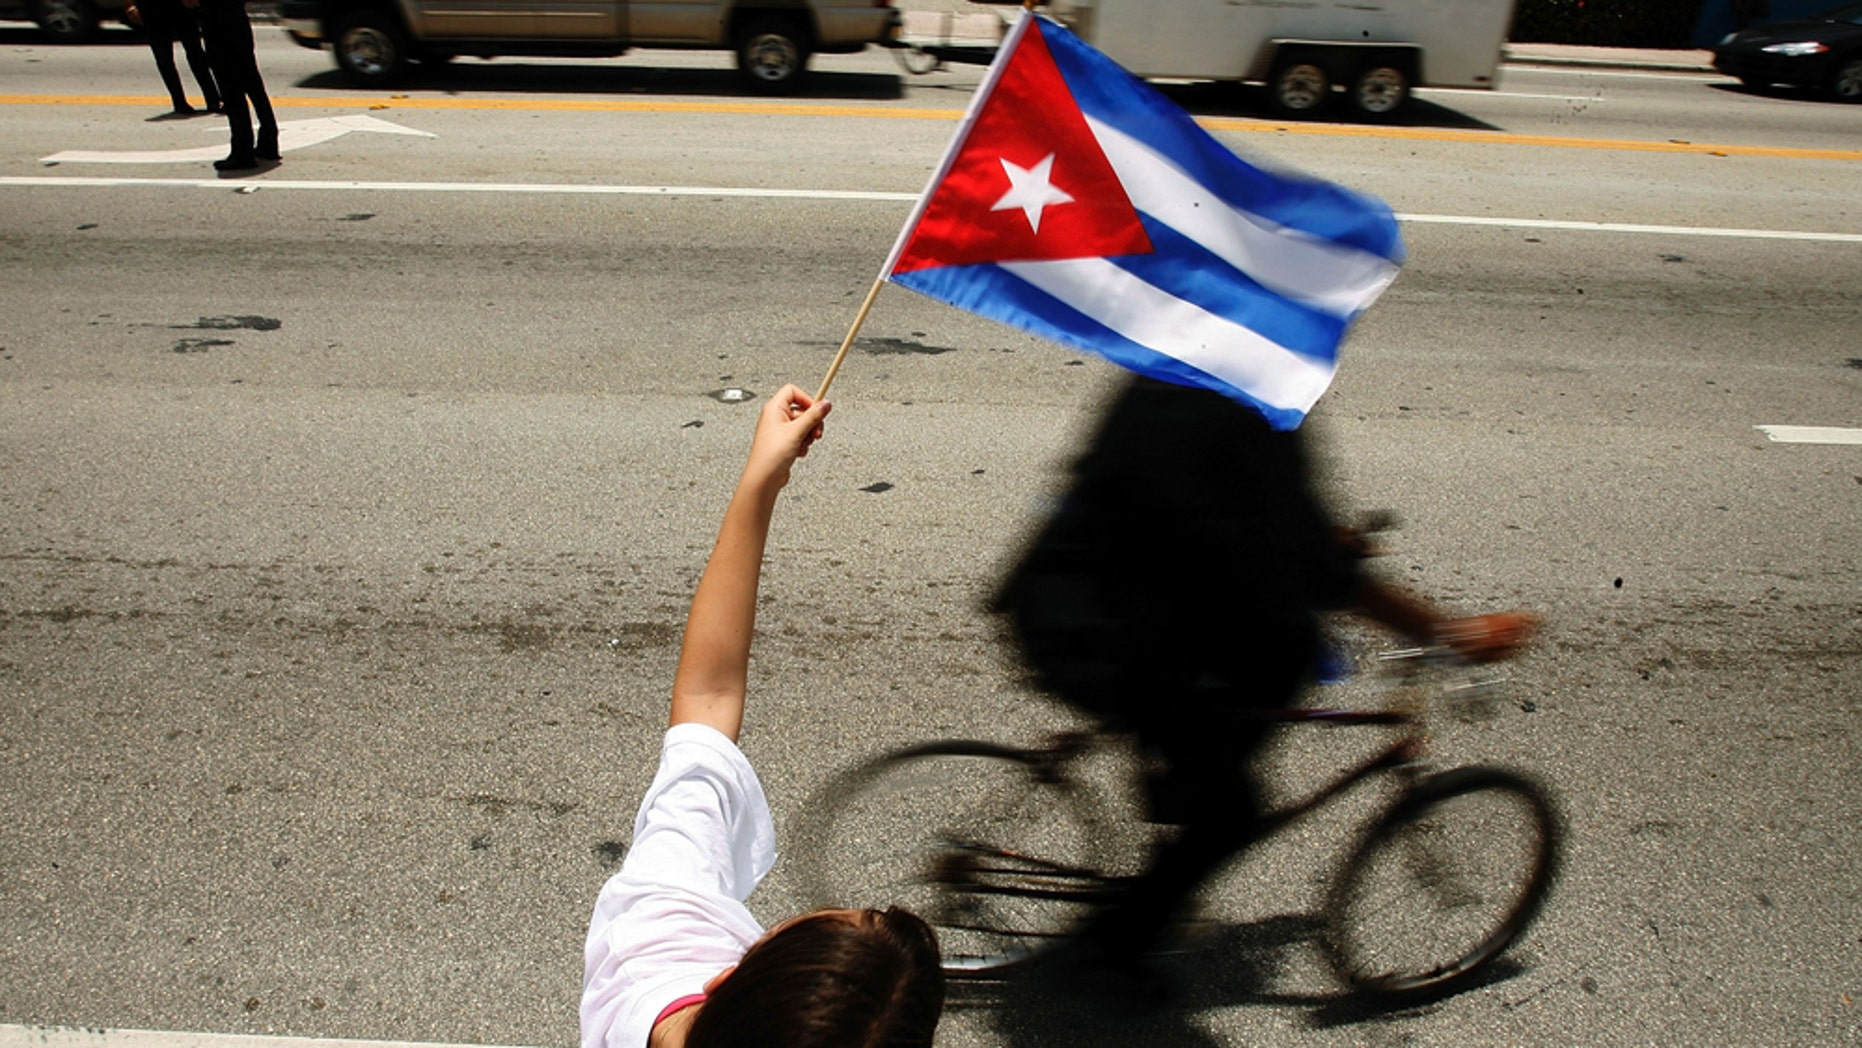 MIAMI - AUGUST 1:  Ana Maria Acevedo, 10, waves a Cuban flag along the famous Calle Ocho in the Little Havana neighborhood August 1, 2006 in Miami, Florida. Acevedo immigrated to the U.S. from Cuba in 2000. Cuban Americans were celebrating the news that Fidel Castro had turned over power to his younger brother, Raul Castro, while he undergoes medical treatment for intestinal bleeding.  (Photo by Chip Somodevilla/Getty Images)